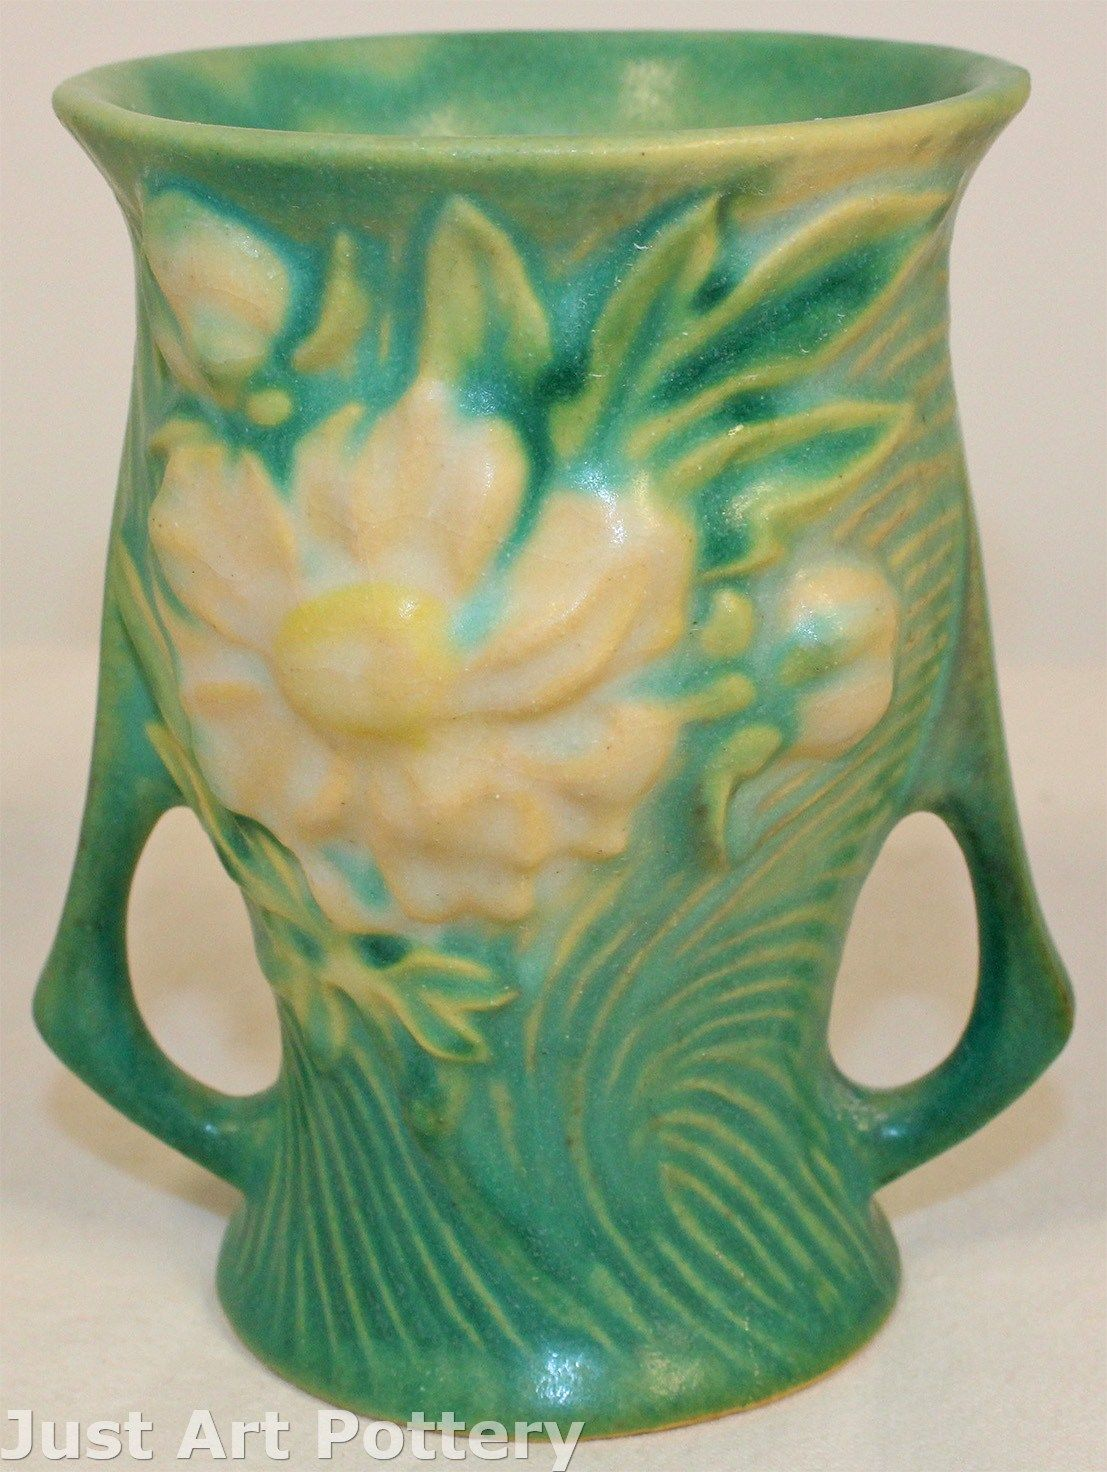 Roseville Pottery Peony Green Vase 57-4 from Just Art Pottery